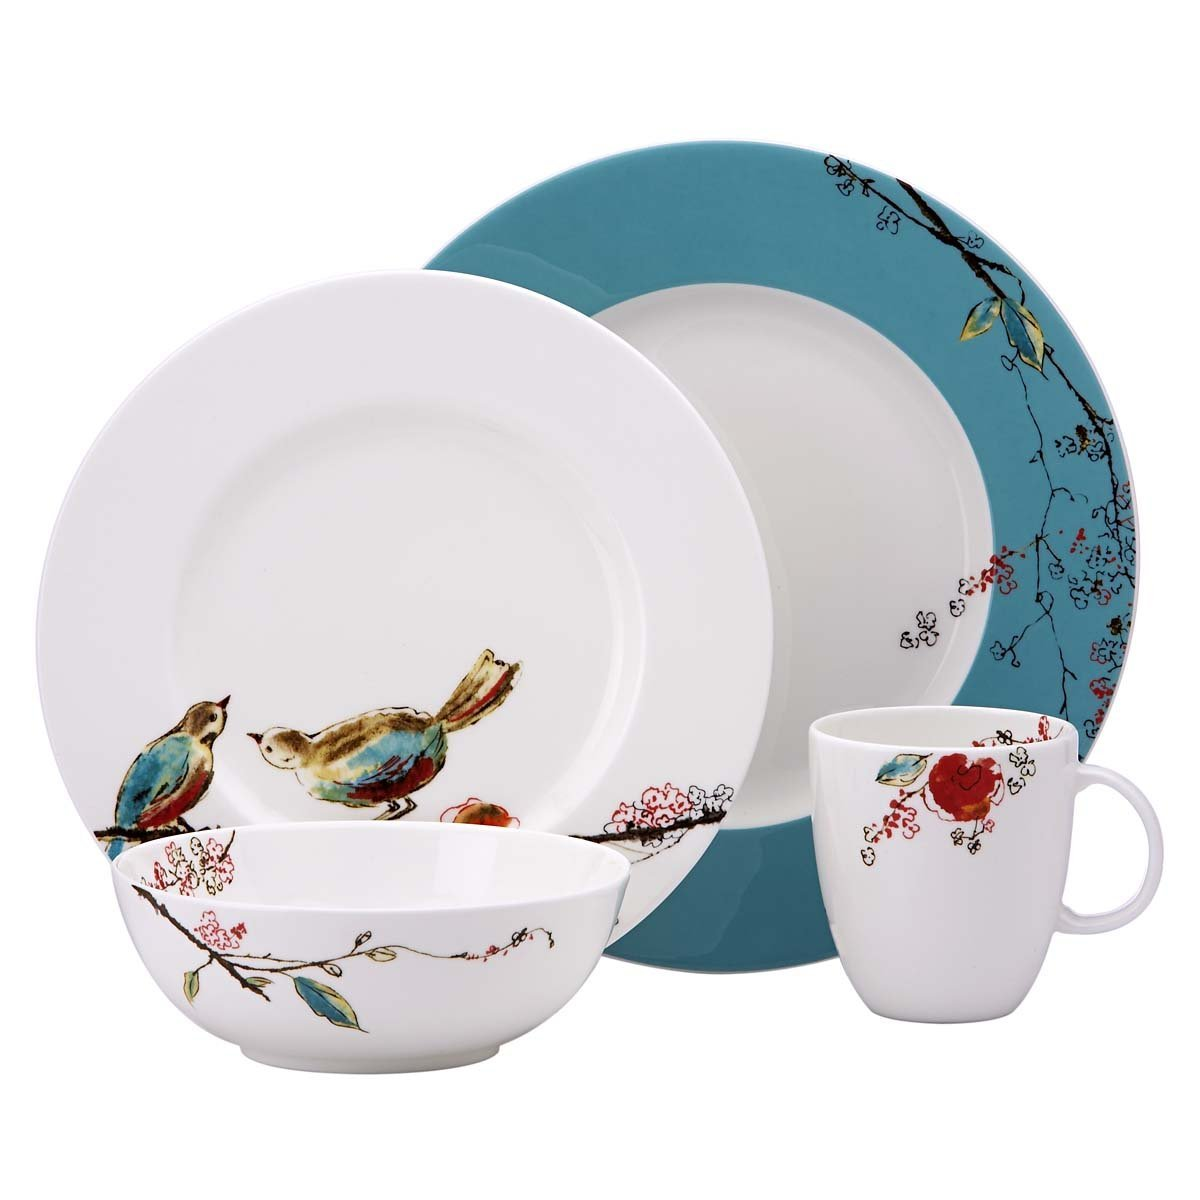 Bird Dinnerware  sc 1 st  Dinnerware Shopping Guide & Bird Dinnerware: Wide Variety of Choices